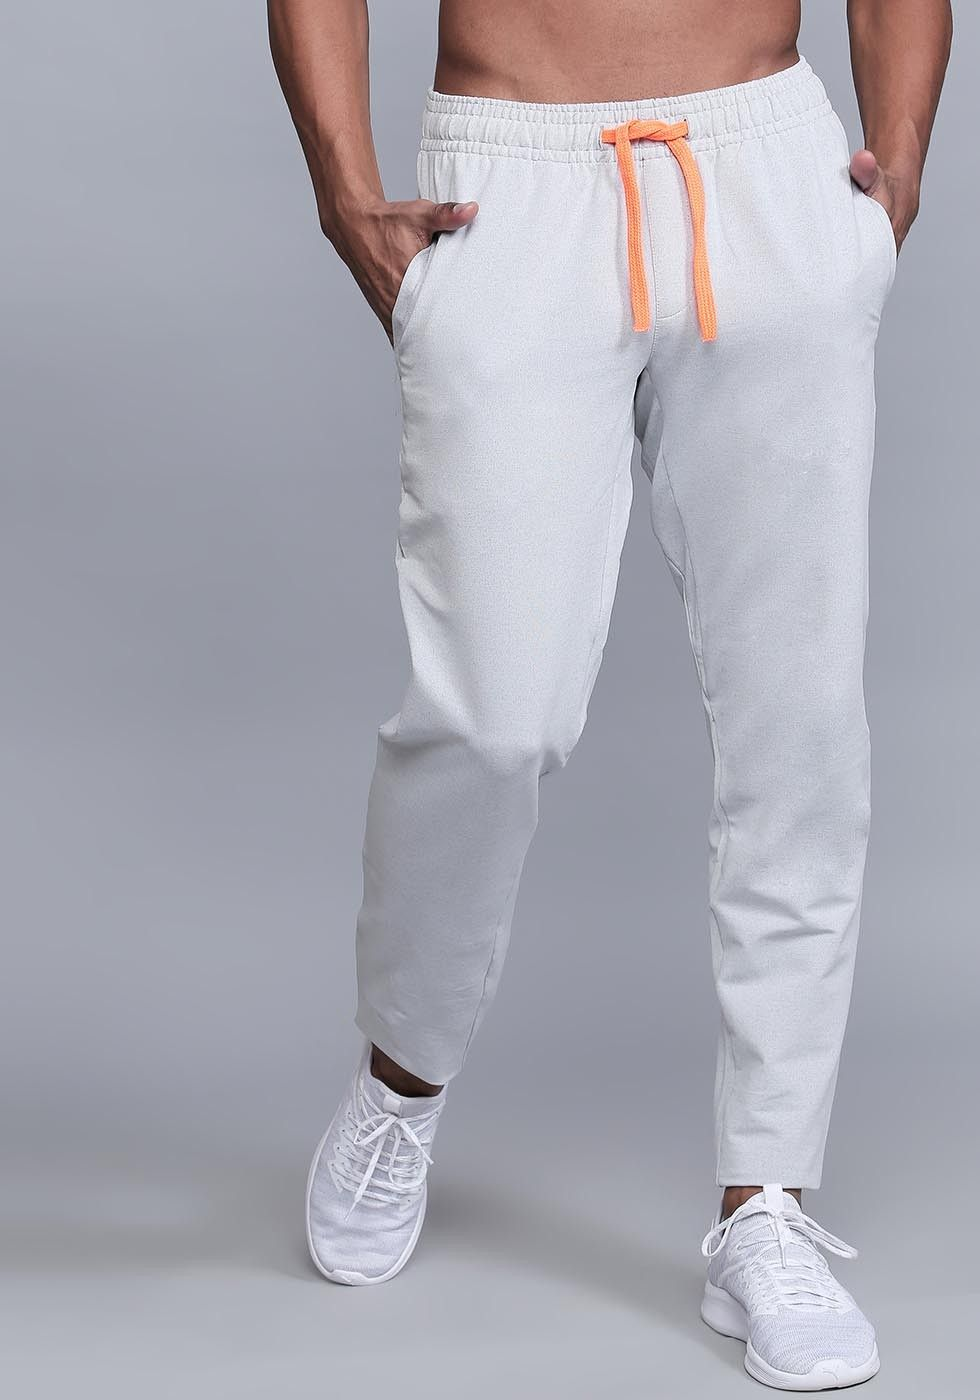 36f9b25aeff ESSENTIAL ACTIVEWEAR JOGGERS BY PROWL ₹1,799.00 | Prowlactive - An ...